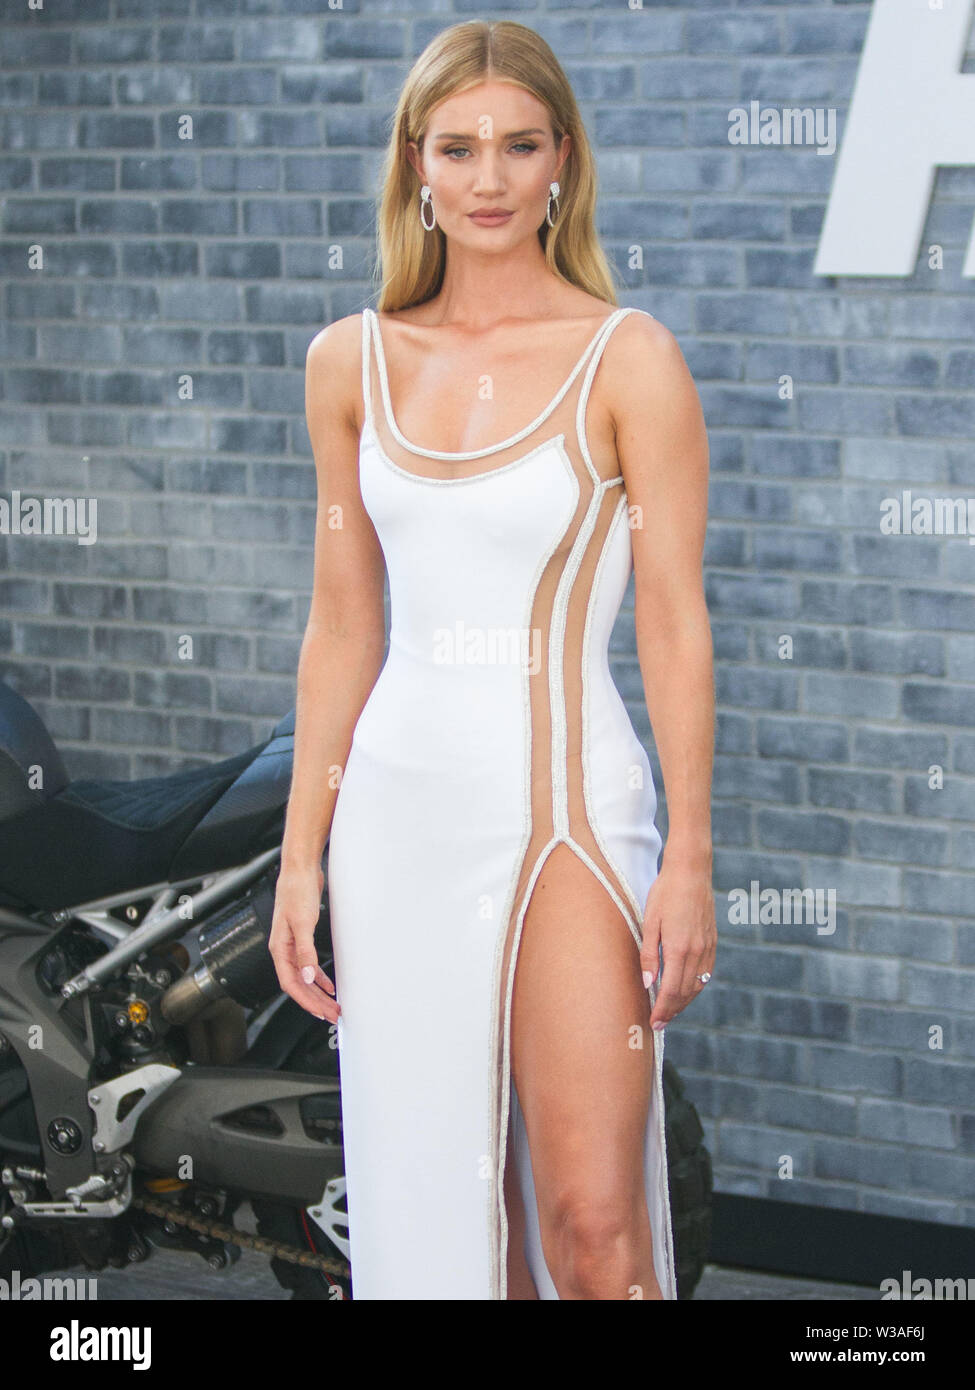 HOLLYWOOD, LOS ANGELES, CALIFORNIA, USA - JULY 13: Model Rosie Huntington-Whiteley arrives at the Los Angeles Premiere Of Universal Pictures' 'Fast & Furious Presents: Hobbs & Shaw' held at Dolby Theatre on July 13, 2019 in Hollywood, Los Angeles, California, USA. (Photo by Rudy Torres/Image Press Agency) Stock Photo